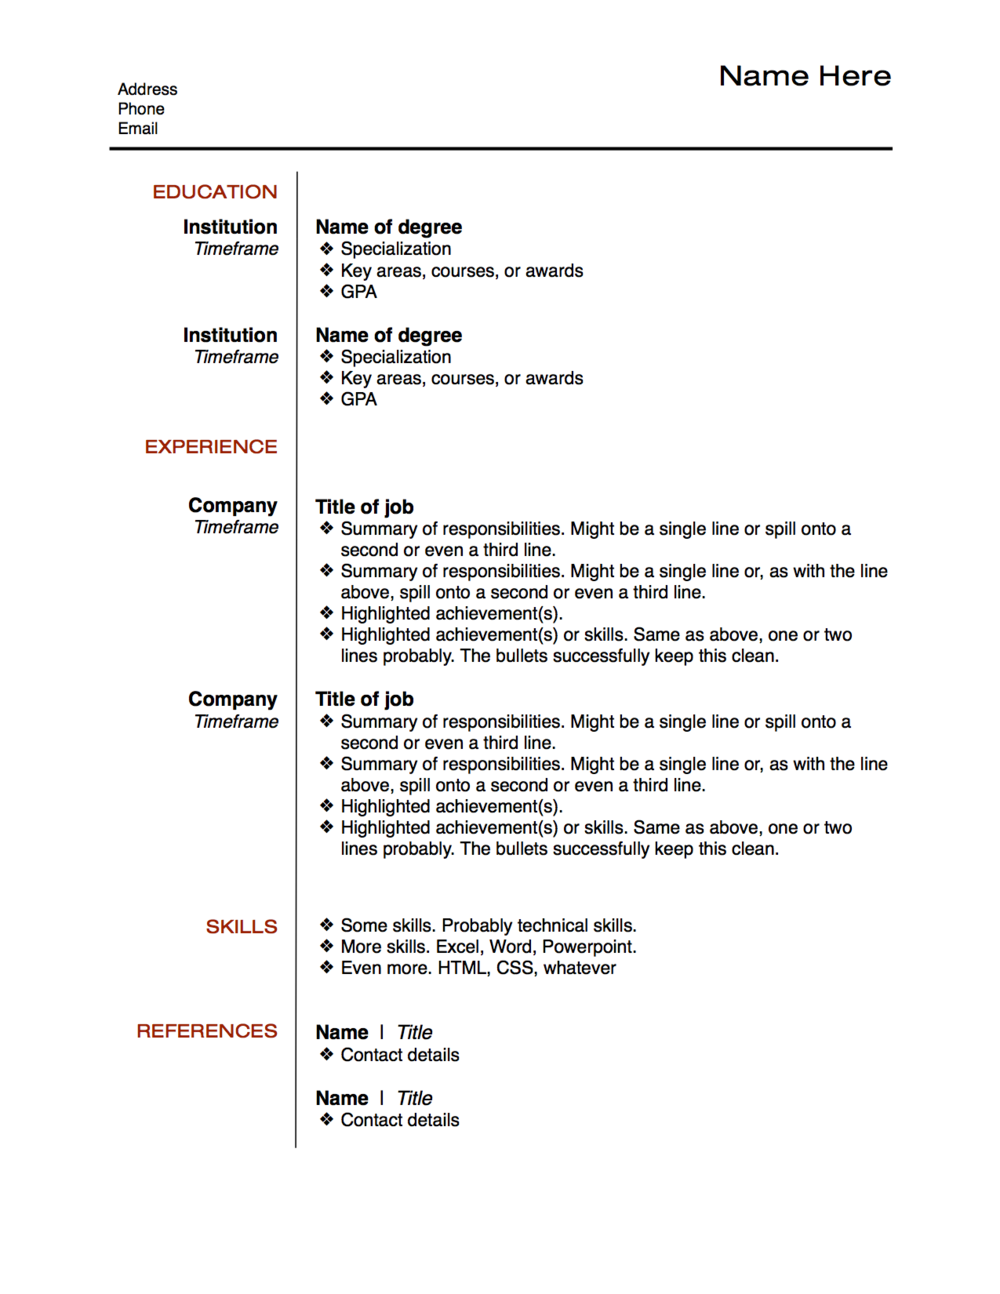 cma resume sample entry level medical assistant resume samples resume layout example resume bullet points exampleshtml